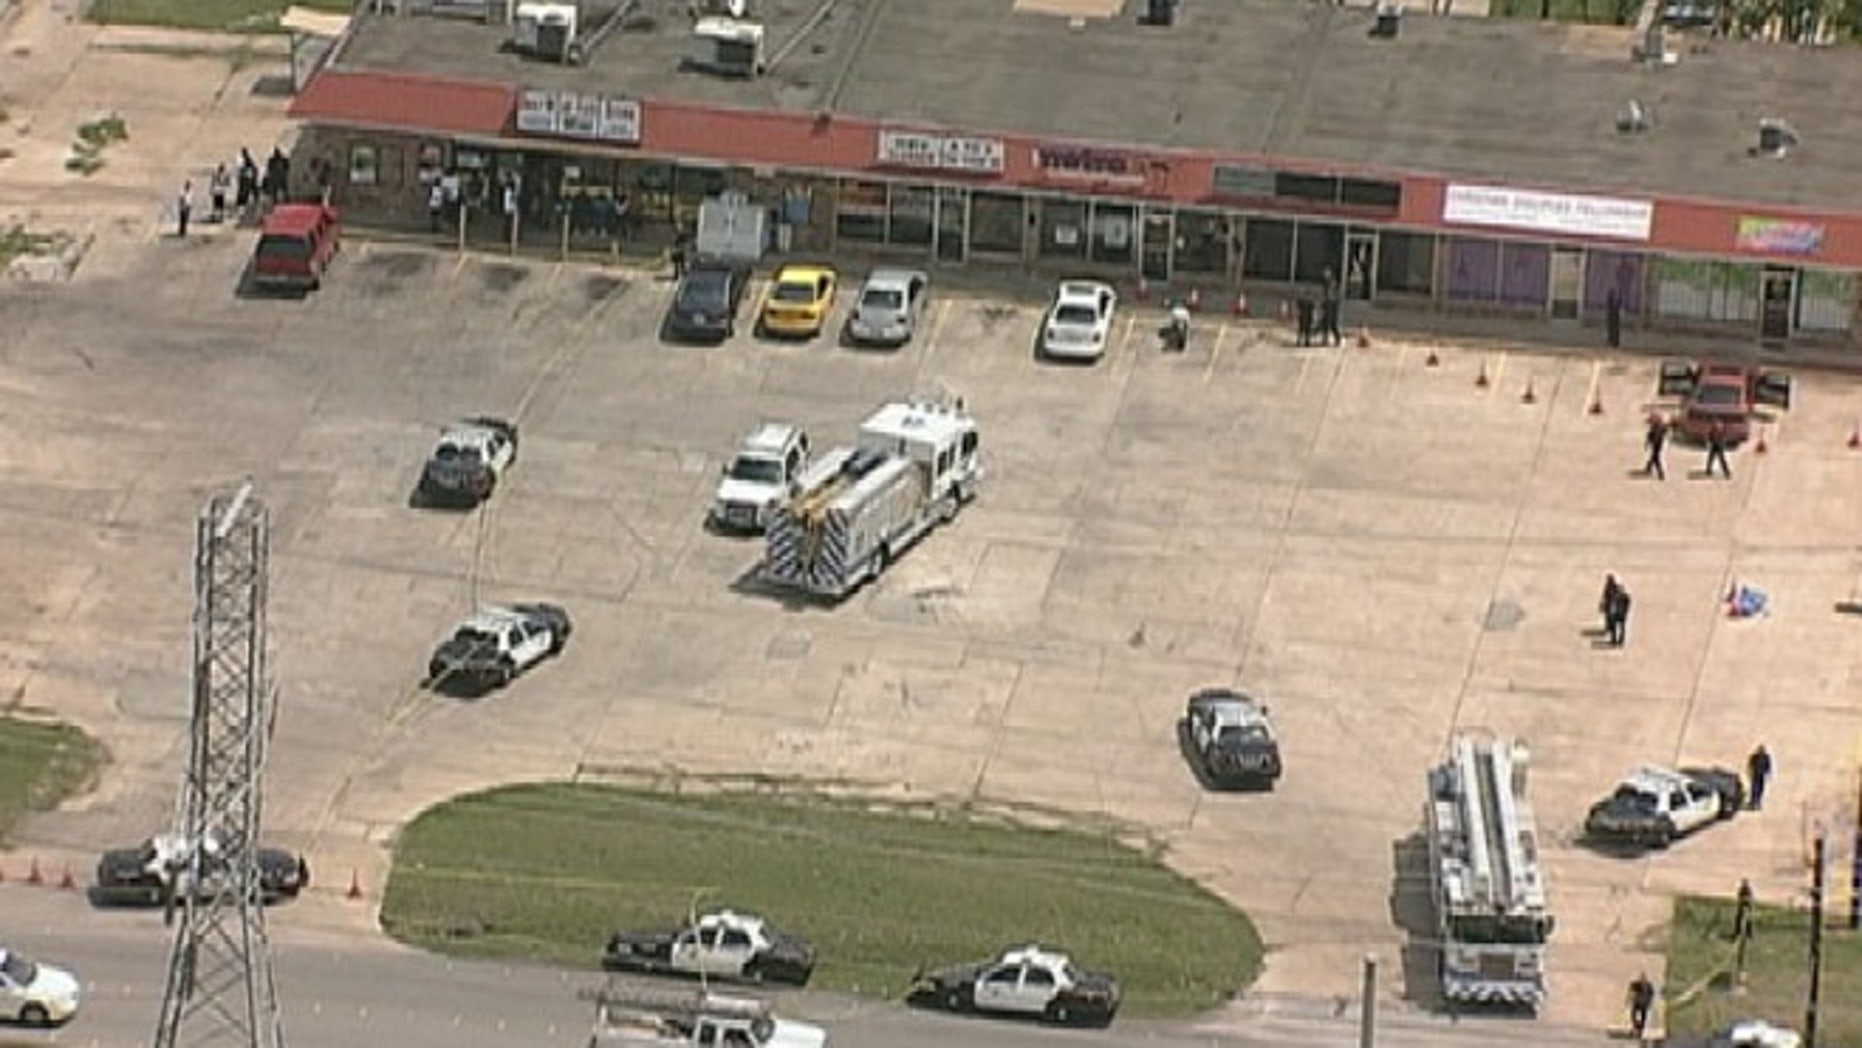 Police say a would-be robber was shot dead by a person with a concealed handgun license Tuesday afternoon outside a shopping center in Ft. Worth, Texas.